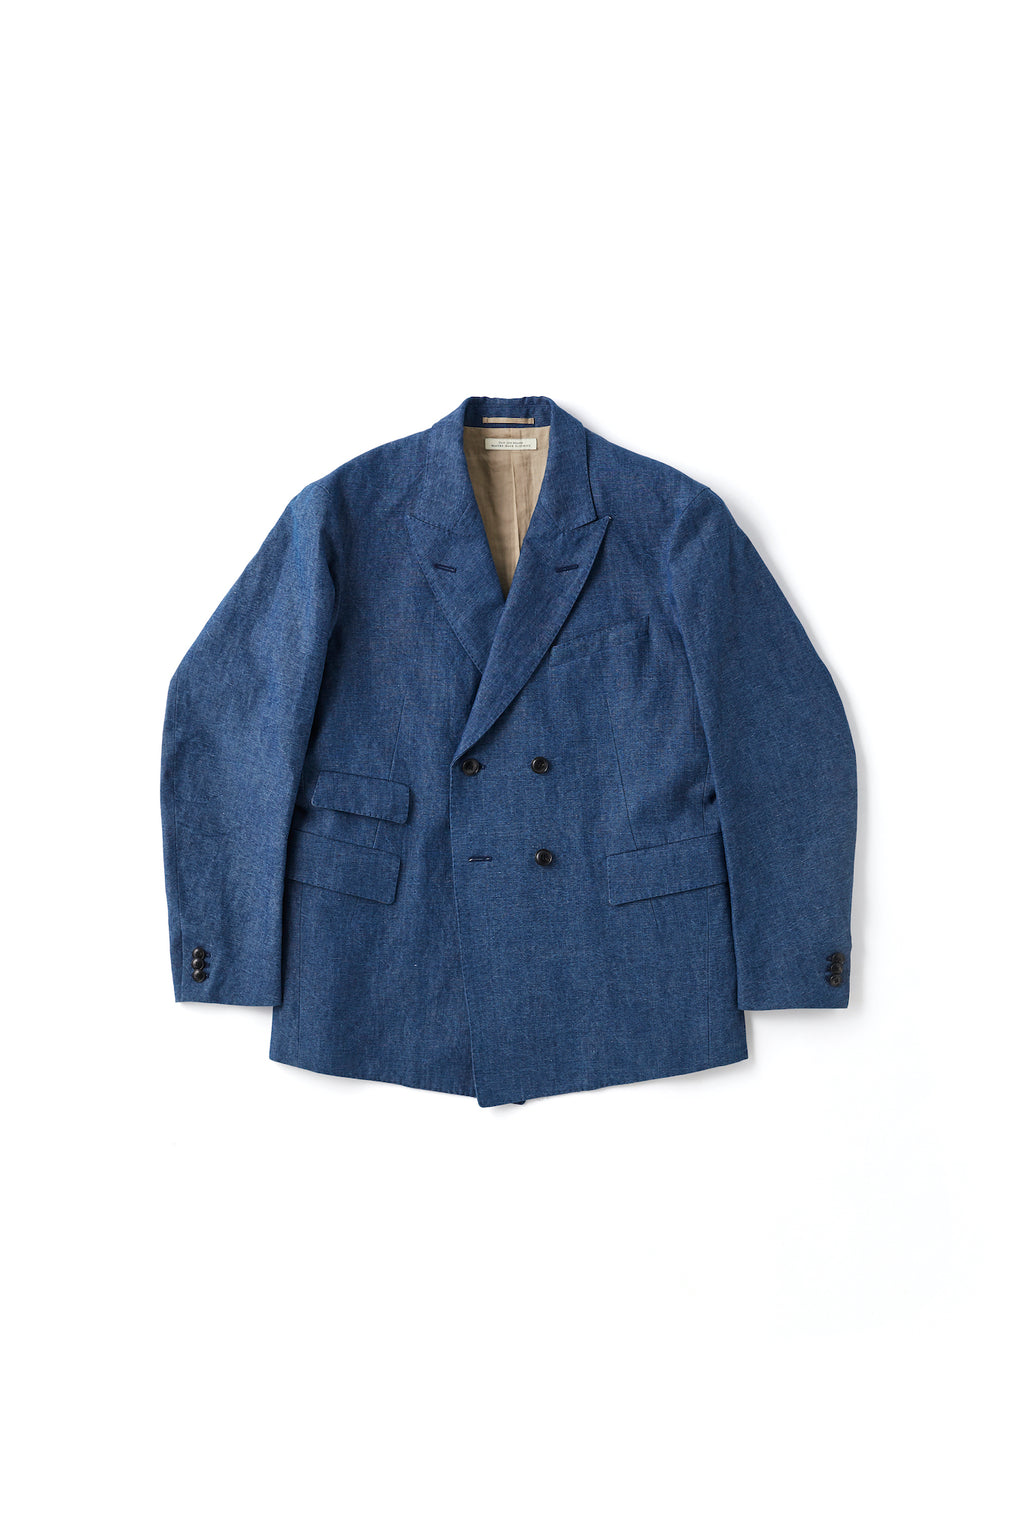 DOUBLE-BREASTED GENTS JACKET - 201OJ-JK02